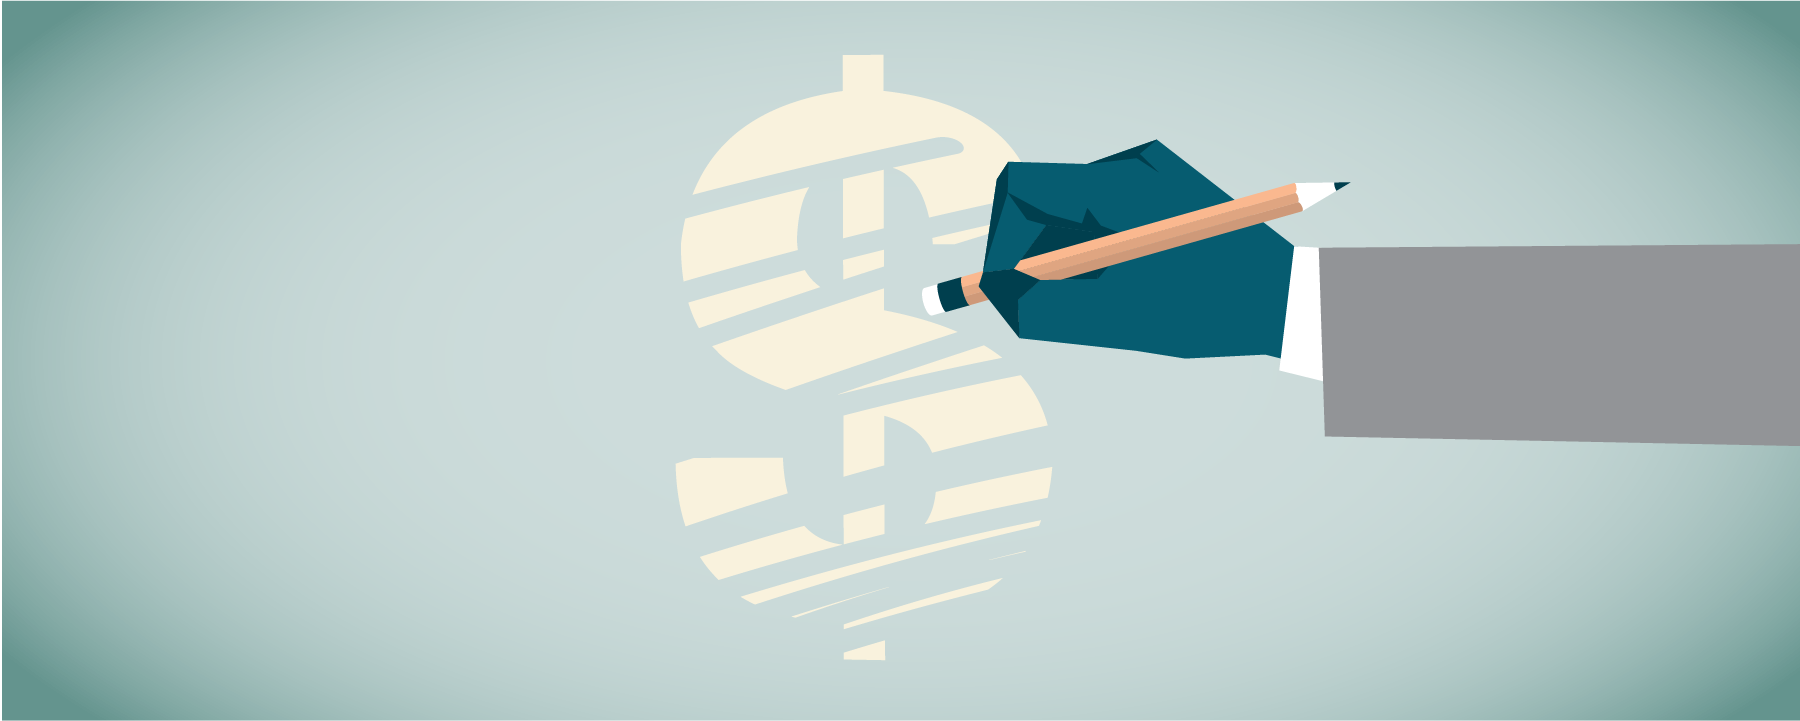 Scientists, Publishers Debate Paychecks for Peer Reviewers